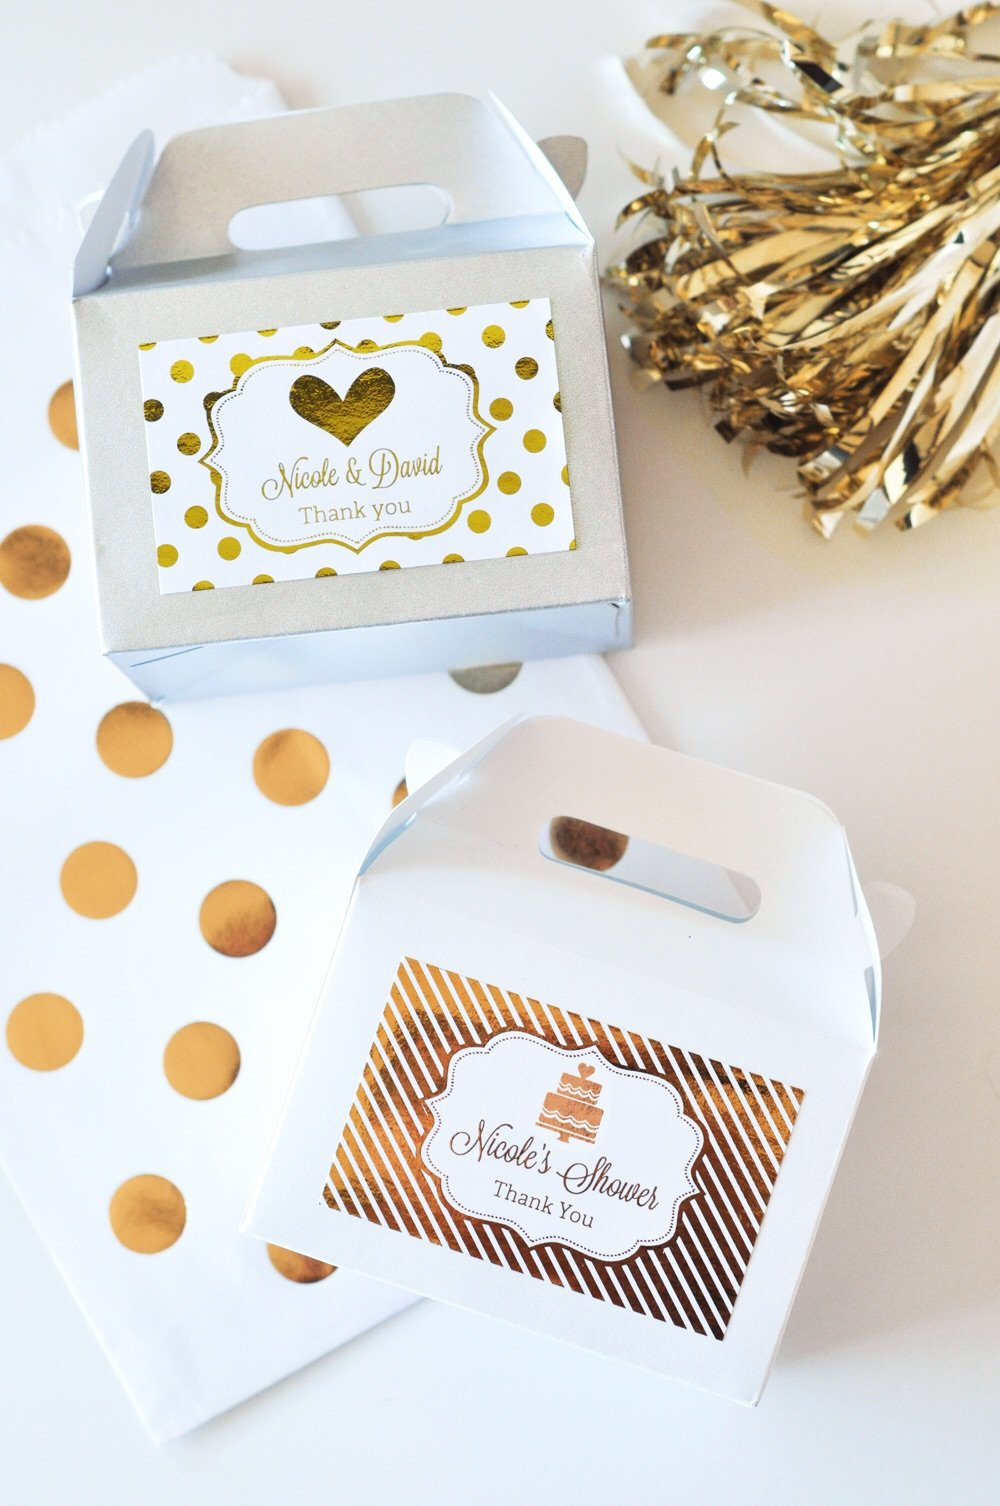 Metallic Foil Party Favors